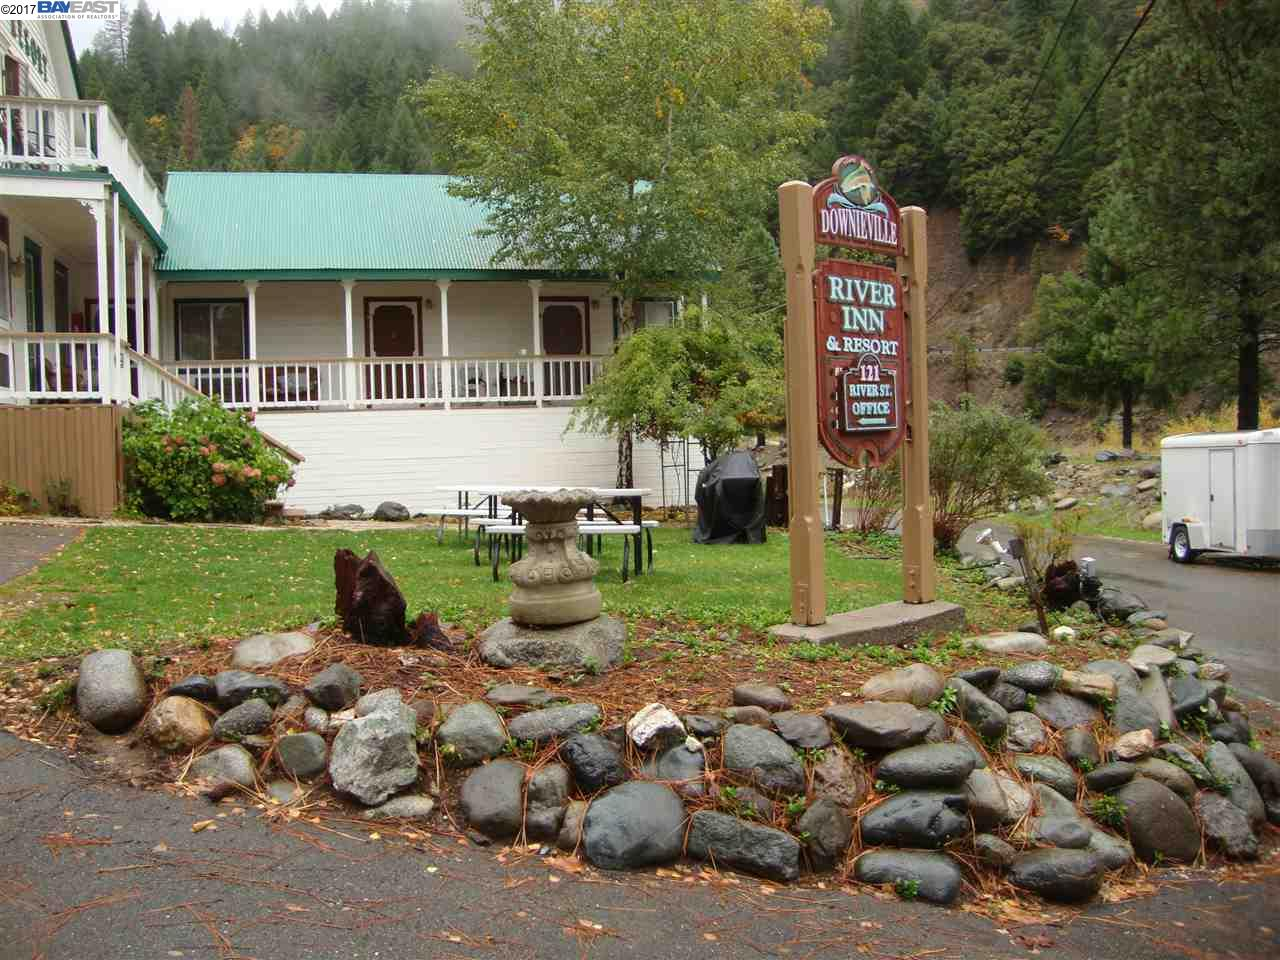 121 River St, DOWNIEVILLE, CA 95936